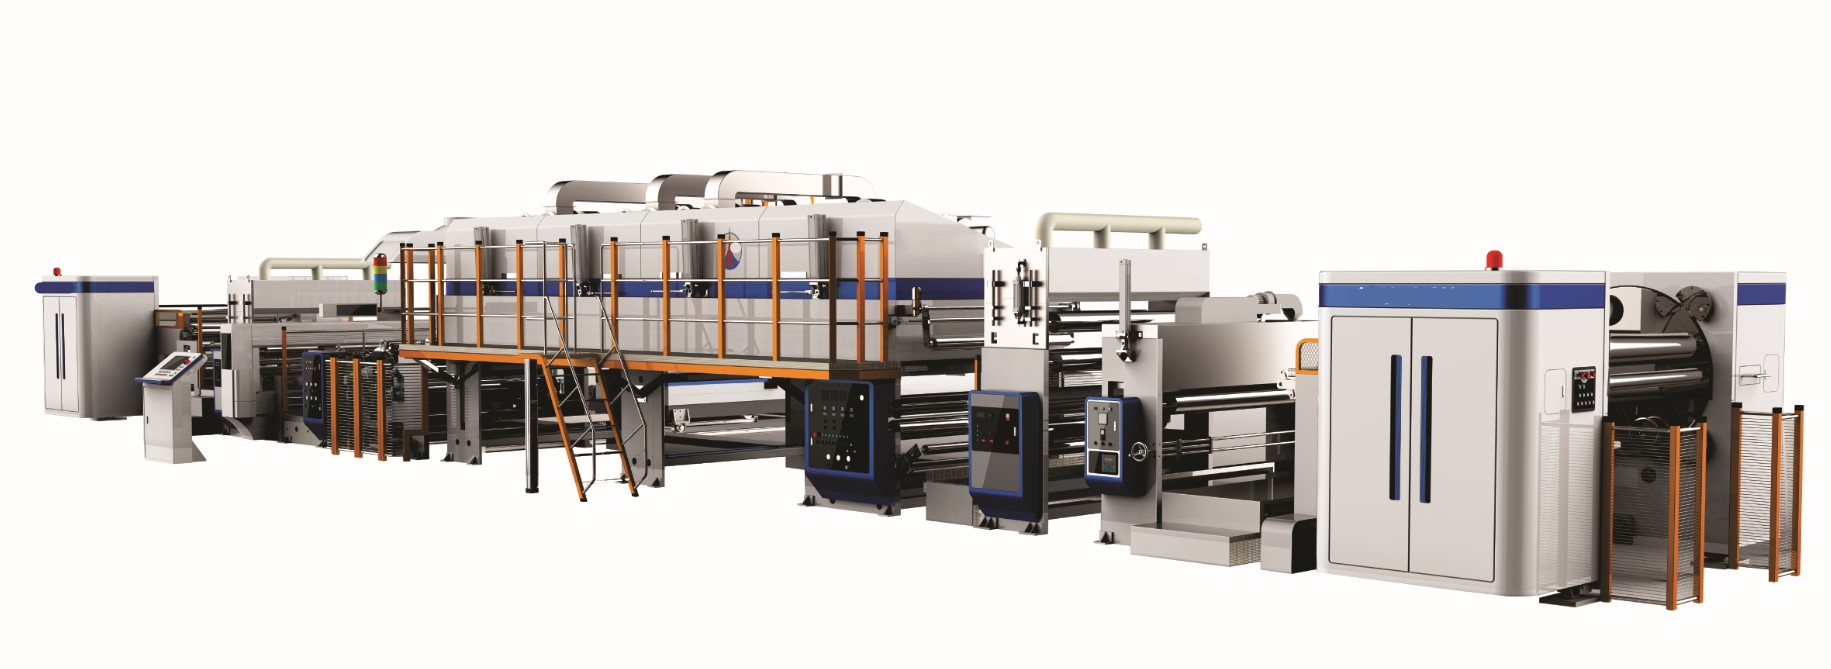 Pre-coated film (protective film) extrusion compound production line